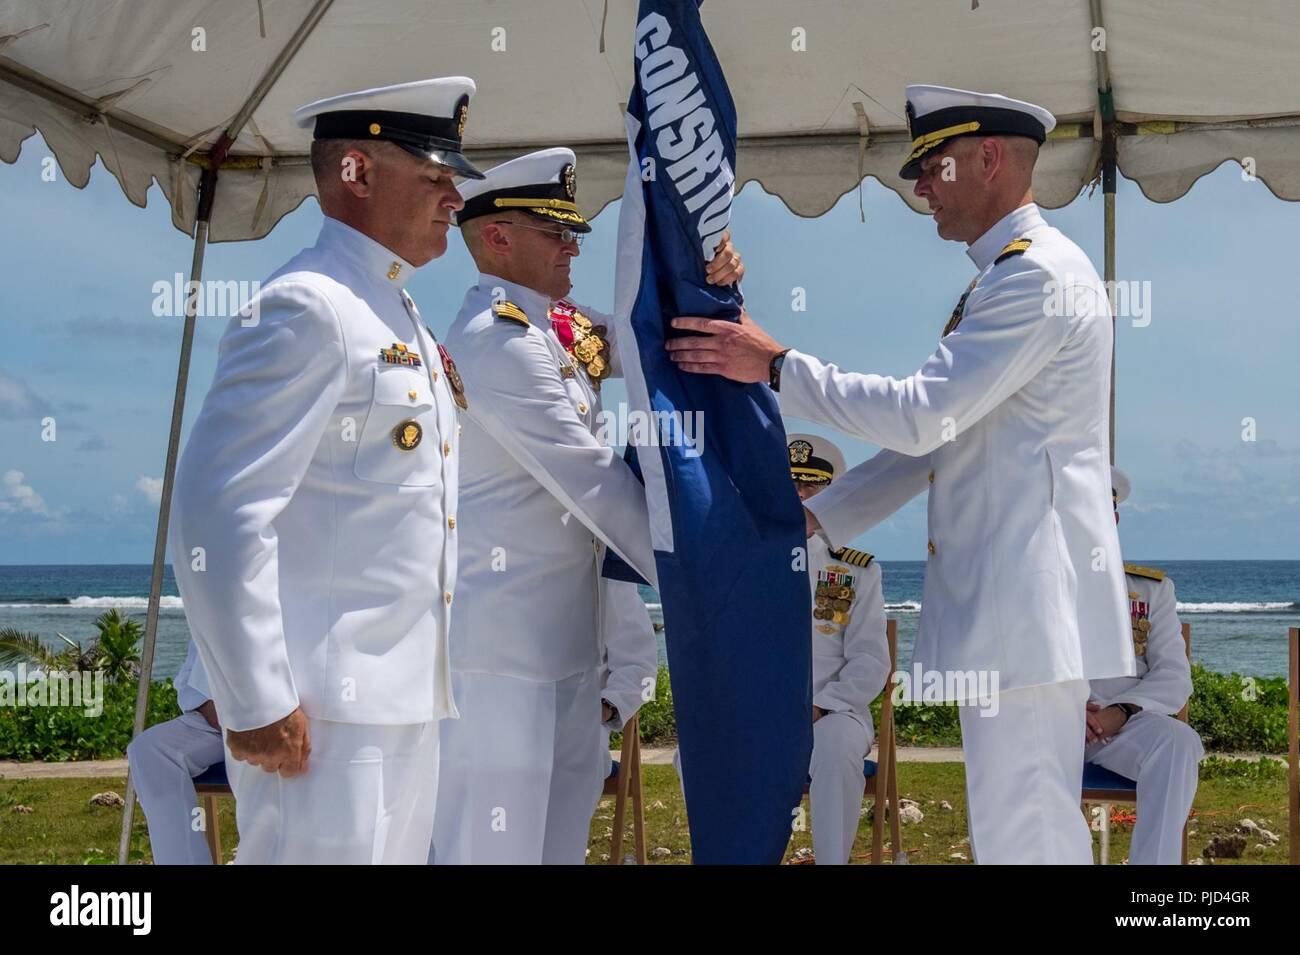 ASAN BEACH, Guam (July 19, 2018) As Command Master Chief Joe Arnold looks on, Capt. Jeffrey Kilian (left) passes the regimental flag to Capt. Steven Stasick during 30th Naval Construction Regiment's (30 NCR) change of command ceremony at the War in the Pacific National Historical Park Asan Beach Unit. The passing of colors from an outgoing commanding officer to an incoming one ensures the unit and its Sailors are never without leadership. Stack relived Kilian during the ceremony. Stock Photo